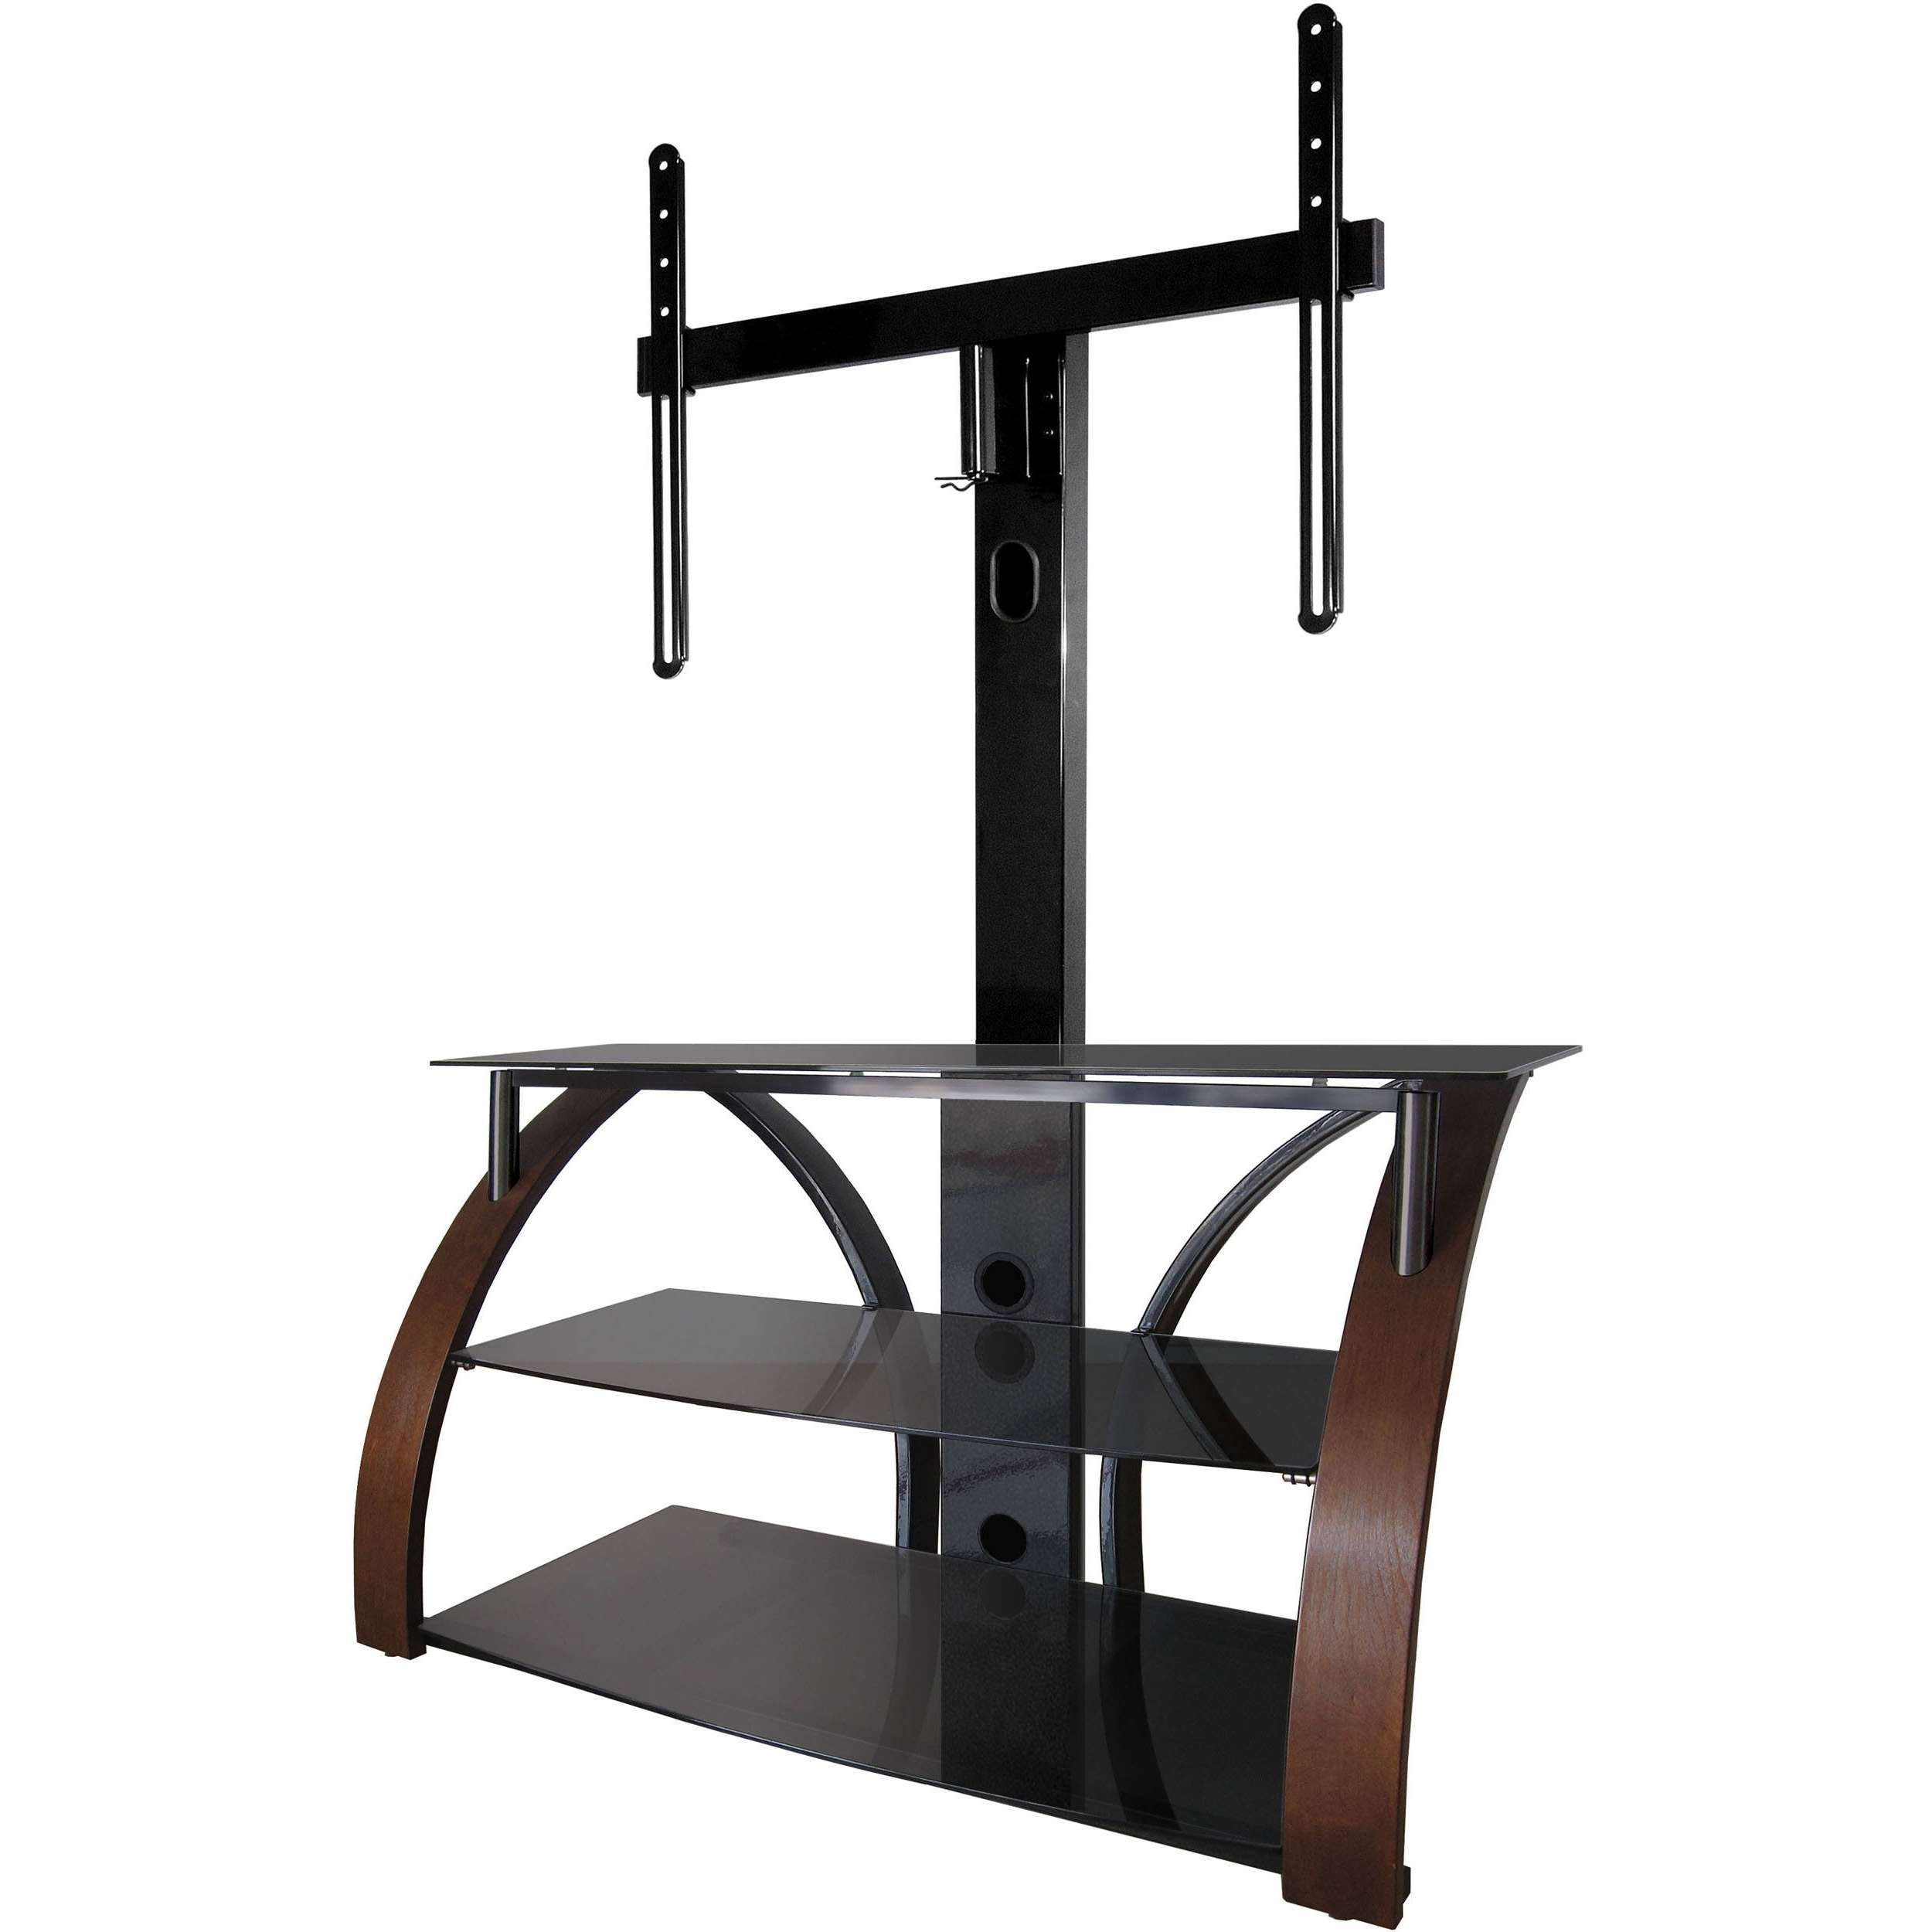 Bell'o Triple Play Universal Flat Panel A/v System Tpc2143 B&h In Bell'o Triple Play Tv Stands (View 7 of 15)